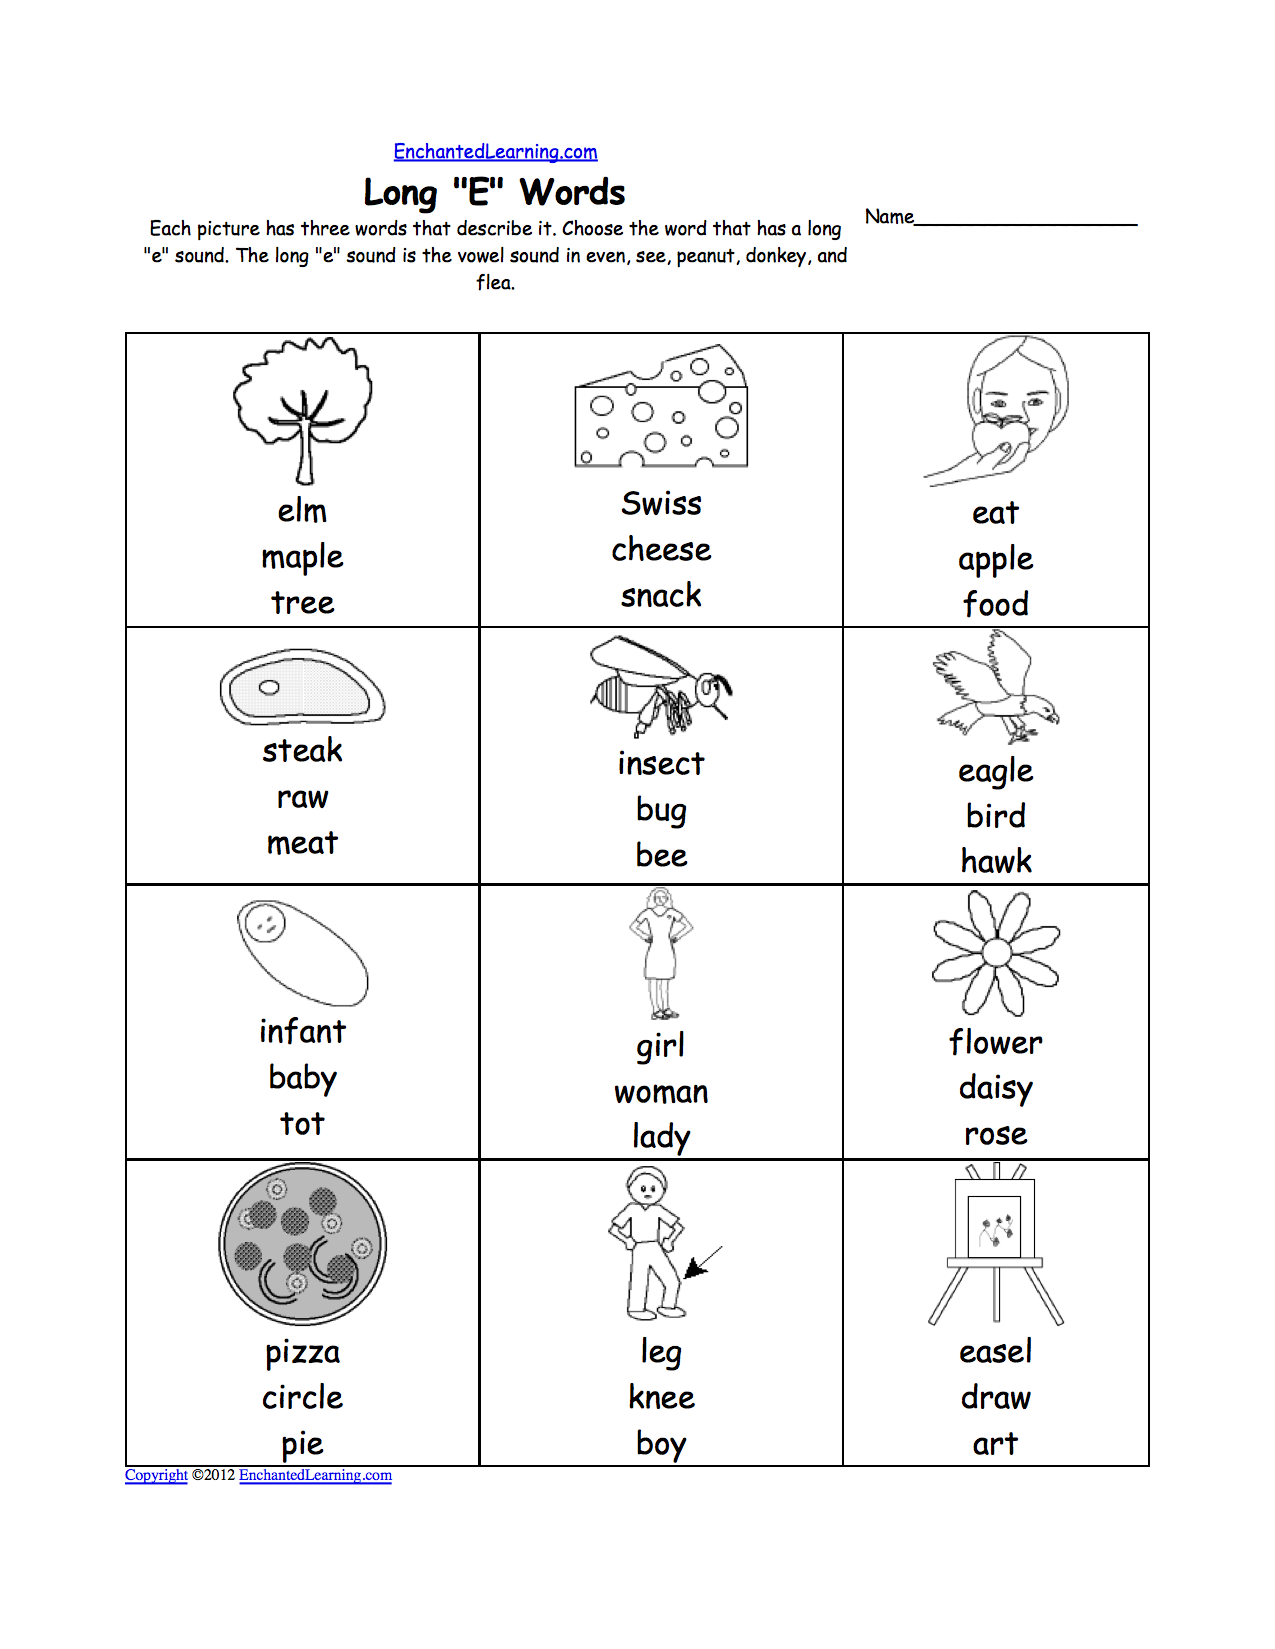 Printables Short E Worksheets For First Grade long e worksheets printable also alphabet activities at enchantedlearning com